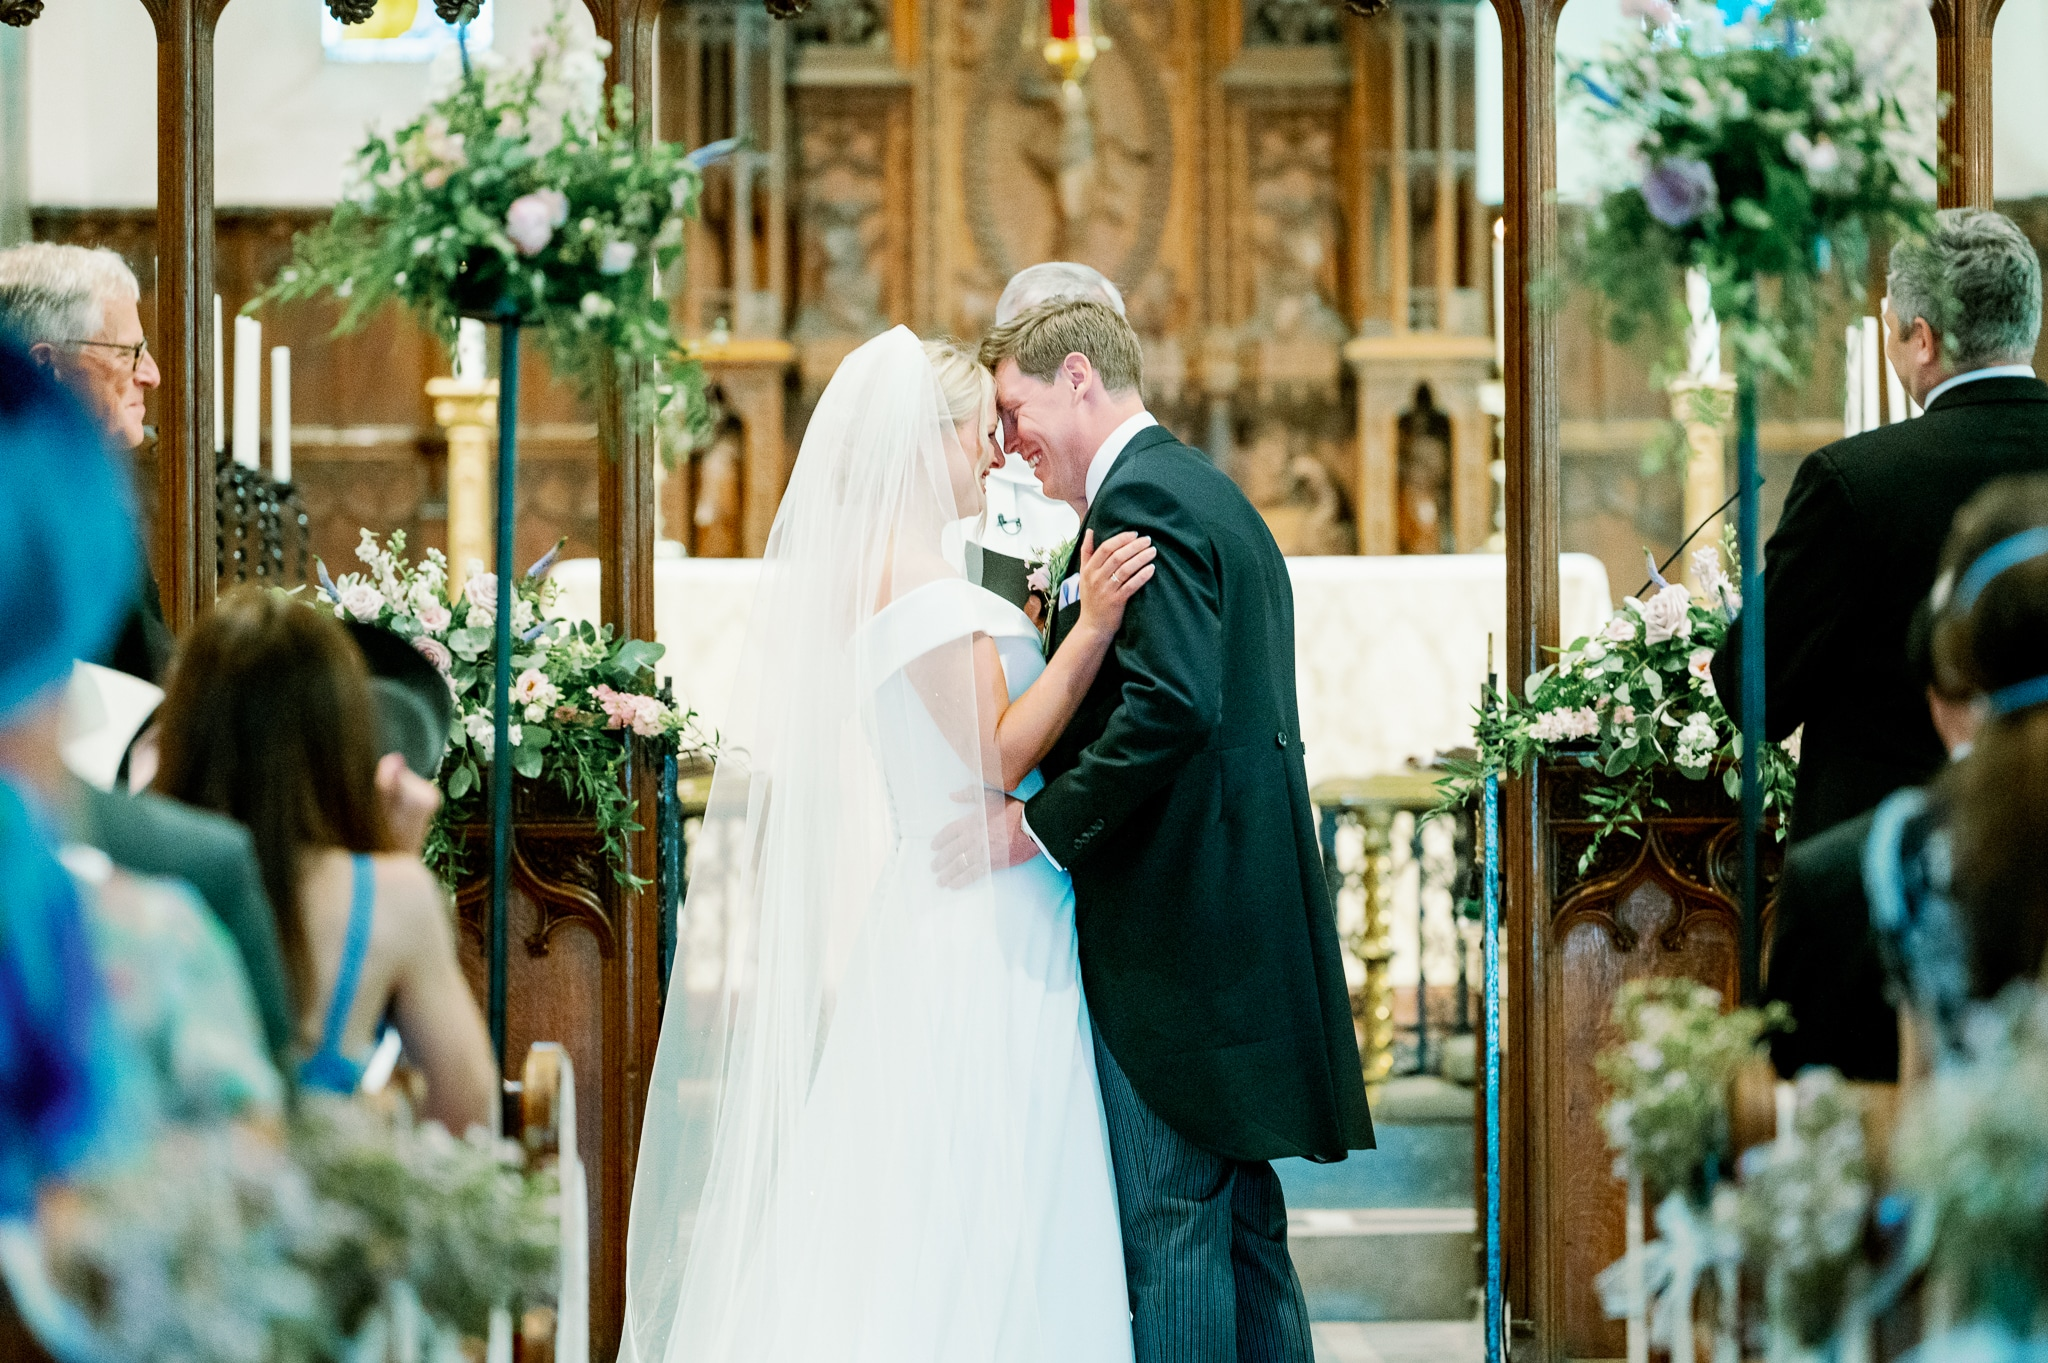 St Peters Church in Bexhill-on-sea with Hastings wedding photographer